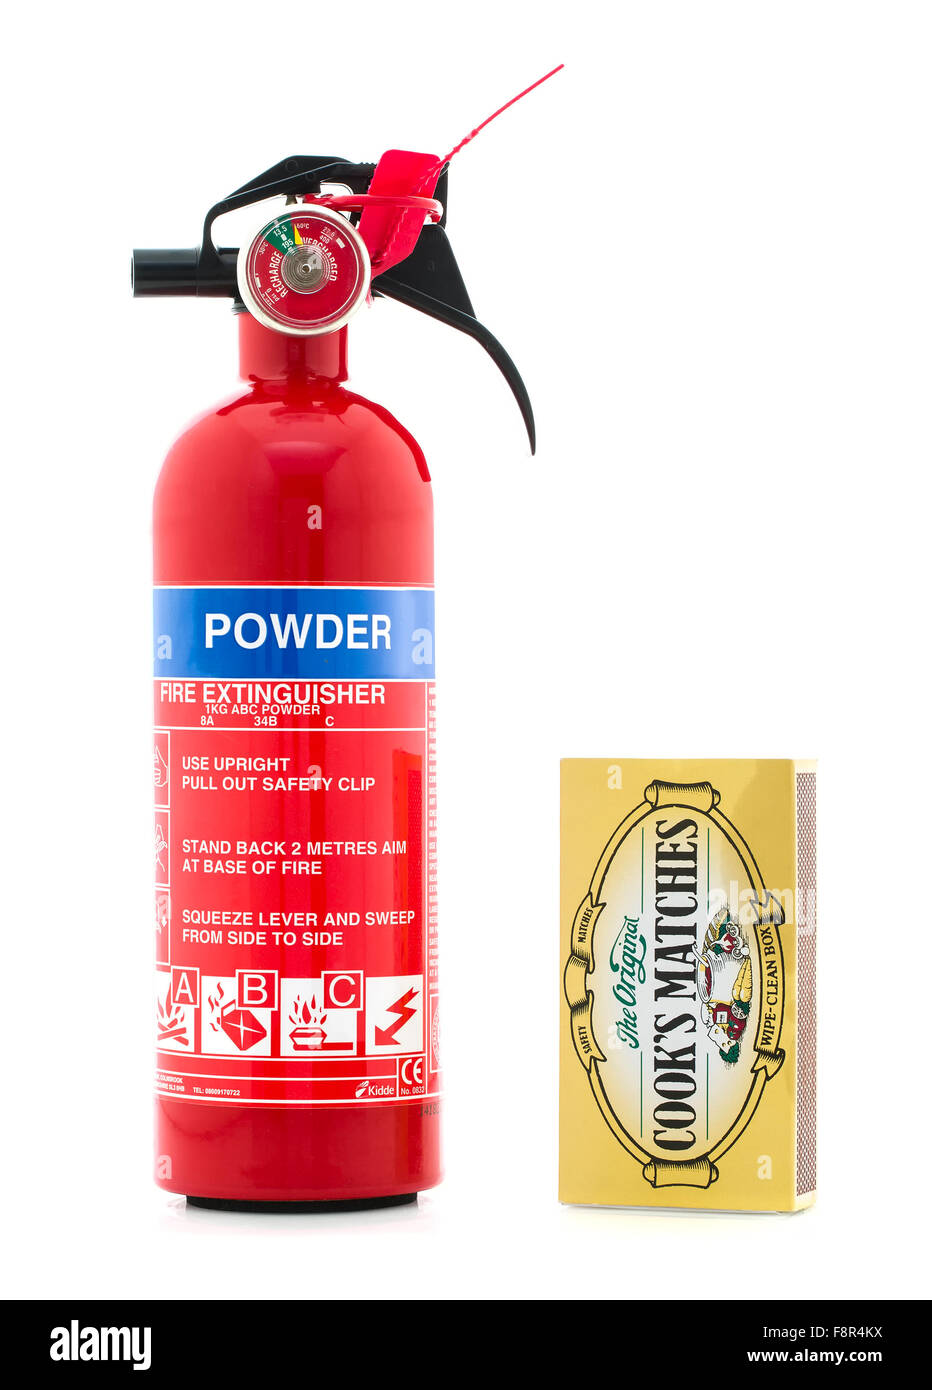 Kidde Dry Powder Fire Extinguisher With a Box of Cooks Matches on a White Background - Stock Image